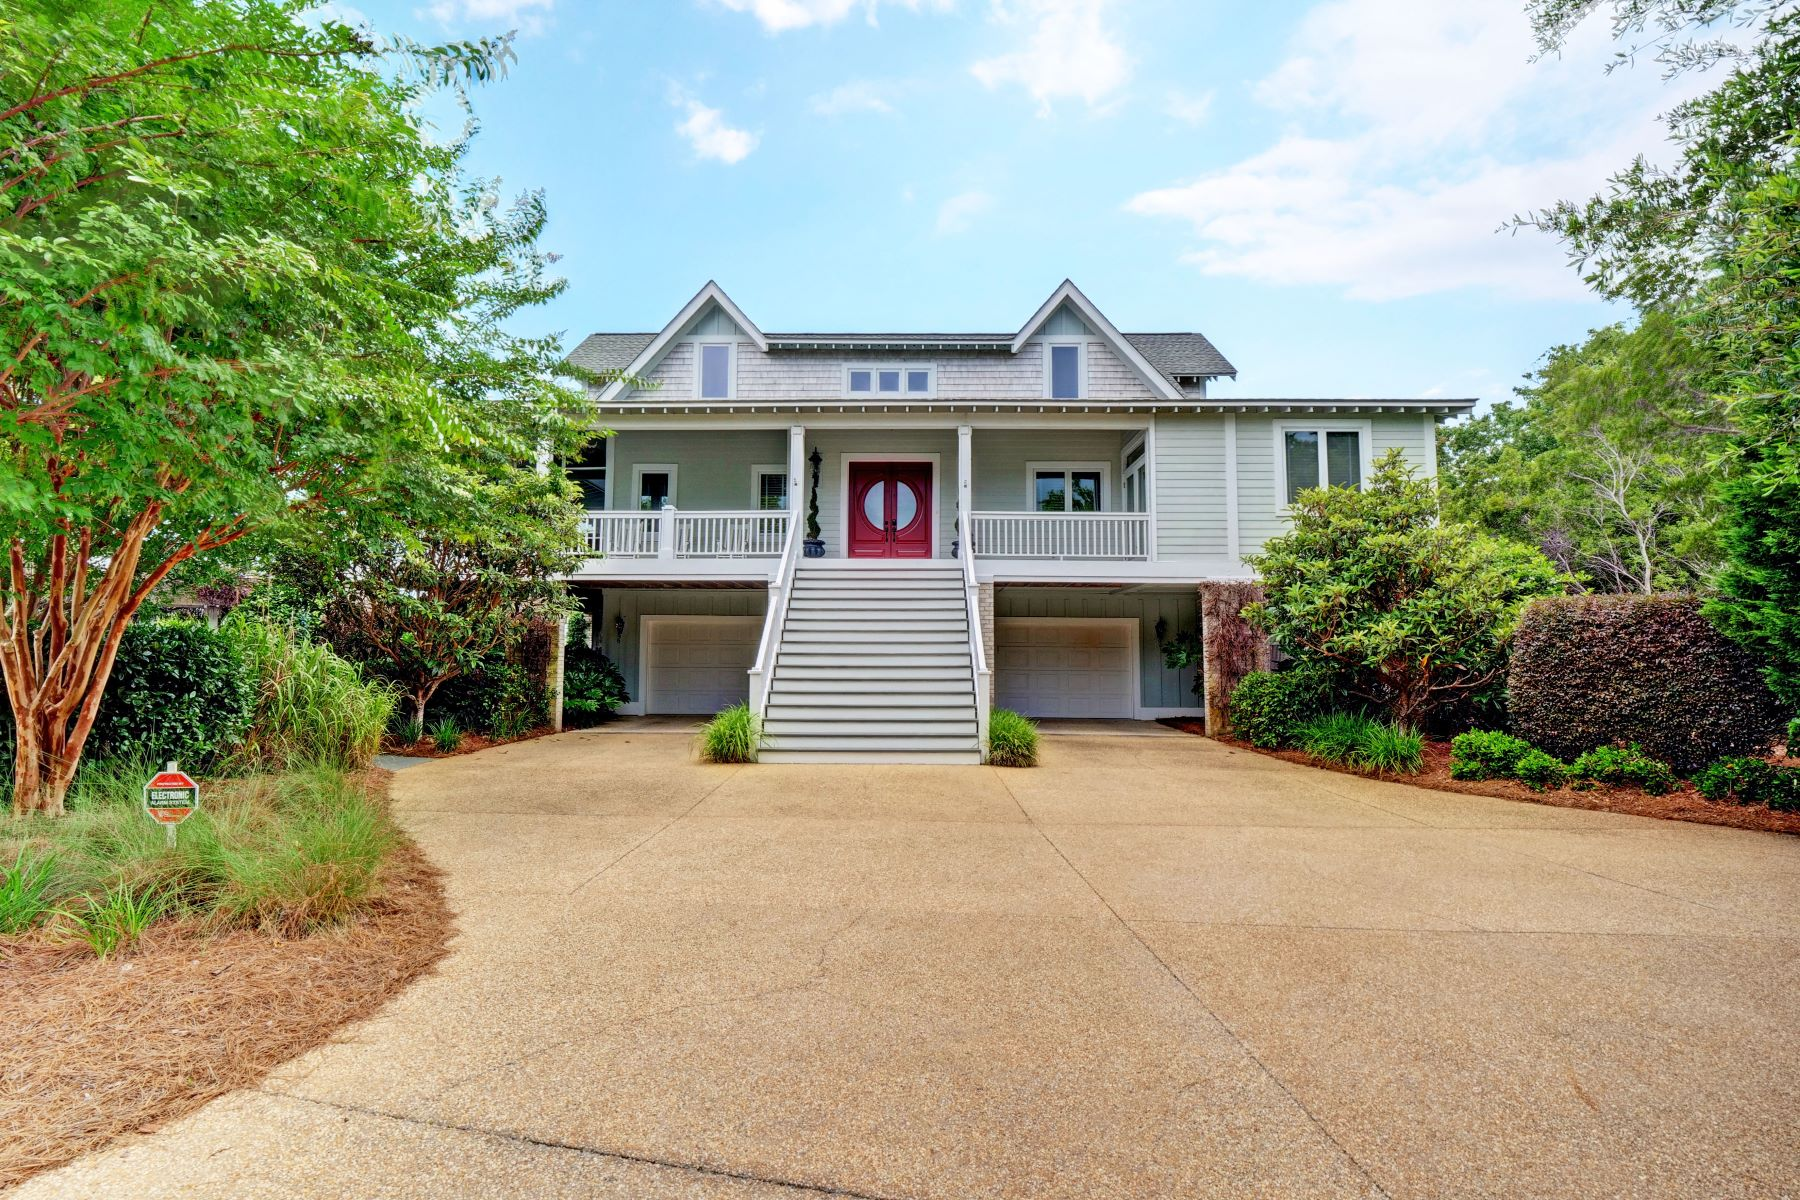 Single Family Home for Active at Spectacular Waterfront Home with Privacy 6249 Pebble Shore Lane Southport, North Carolina 28461 United States